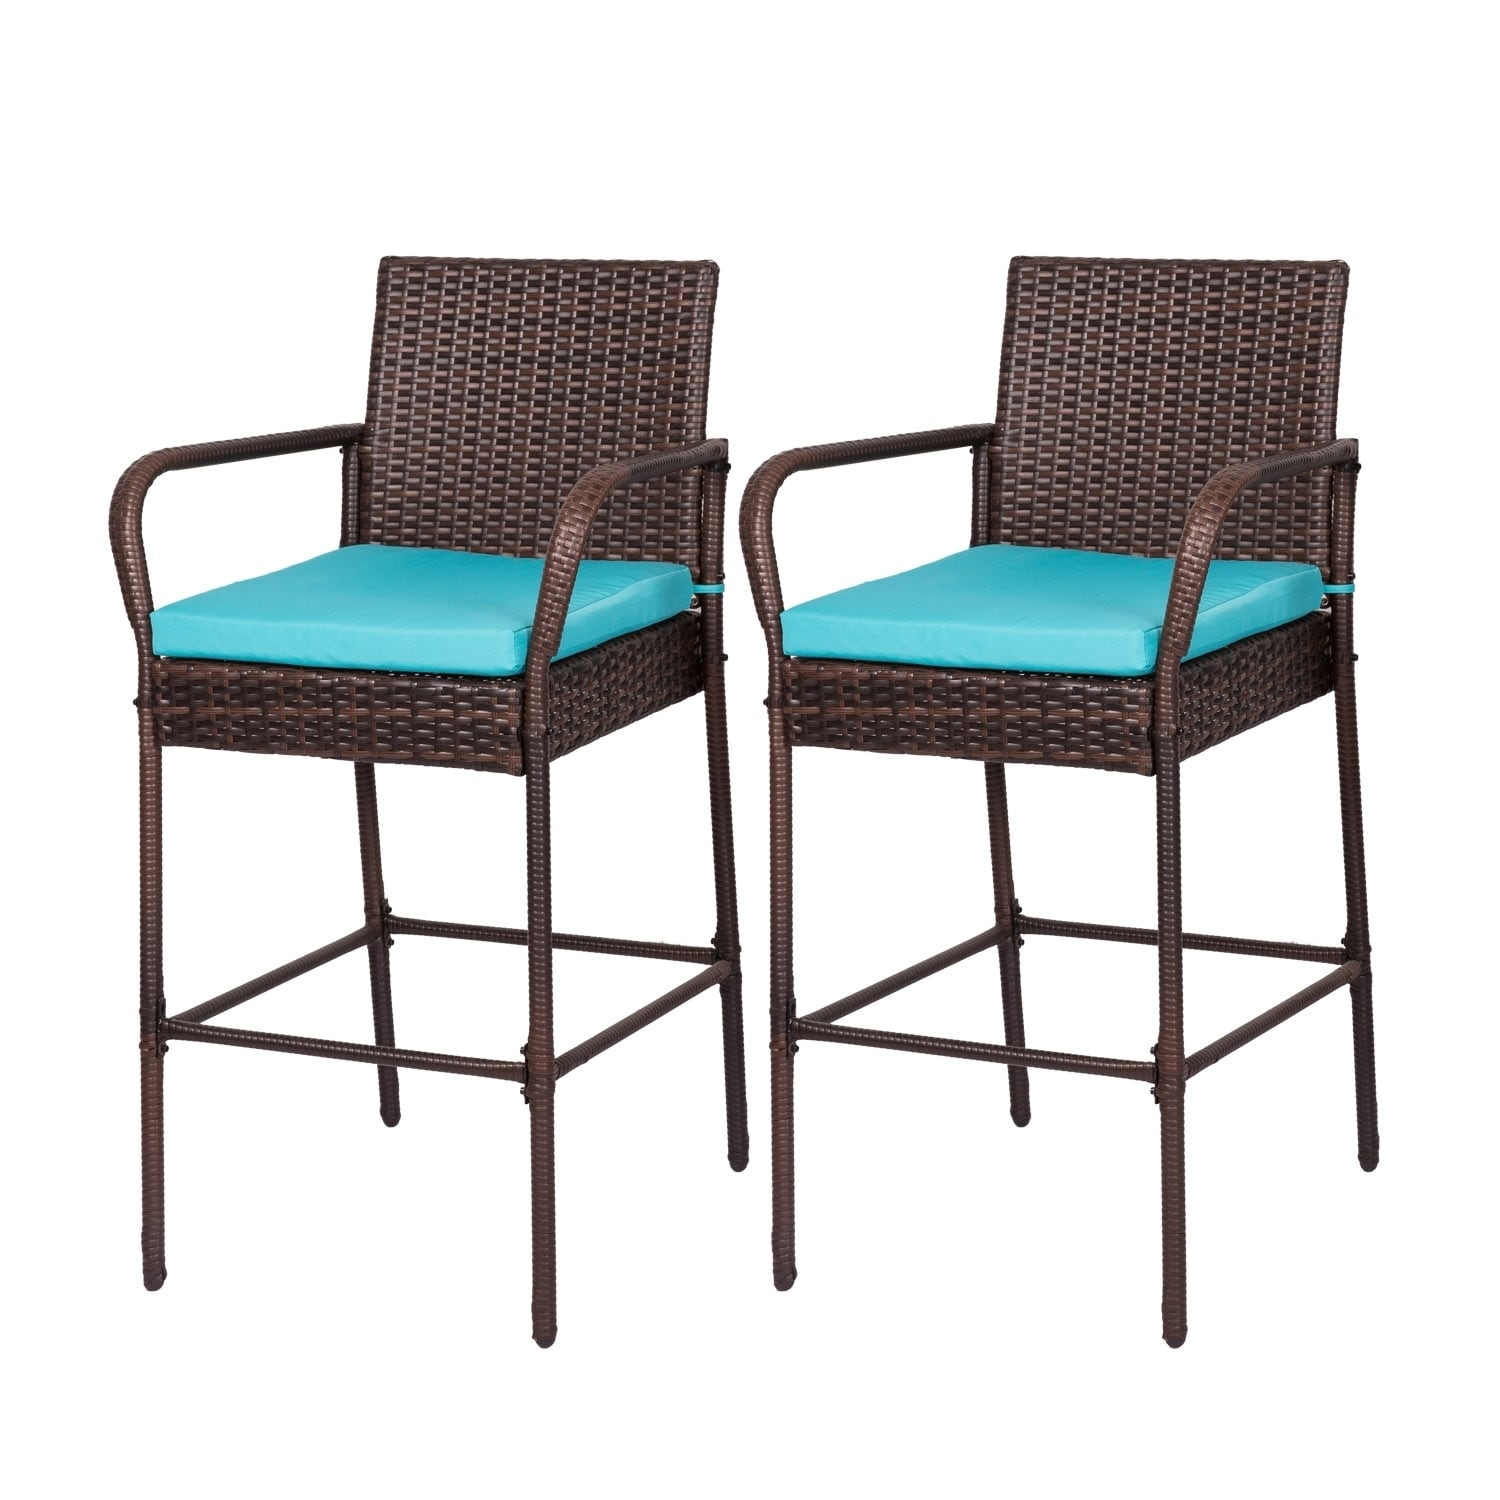 Kinbor Outdoor Wicker Bar Stools Backyard Rattan High Back Chair With Cushions Set Of 2